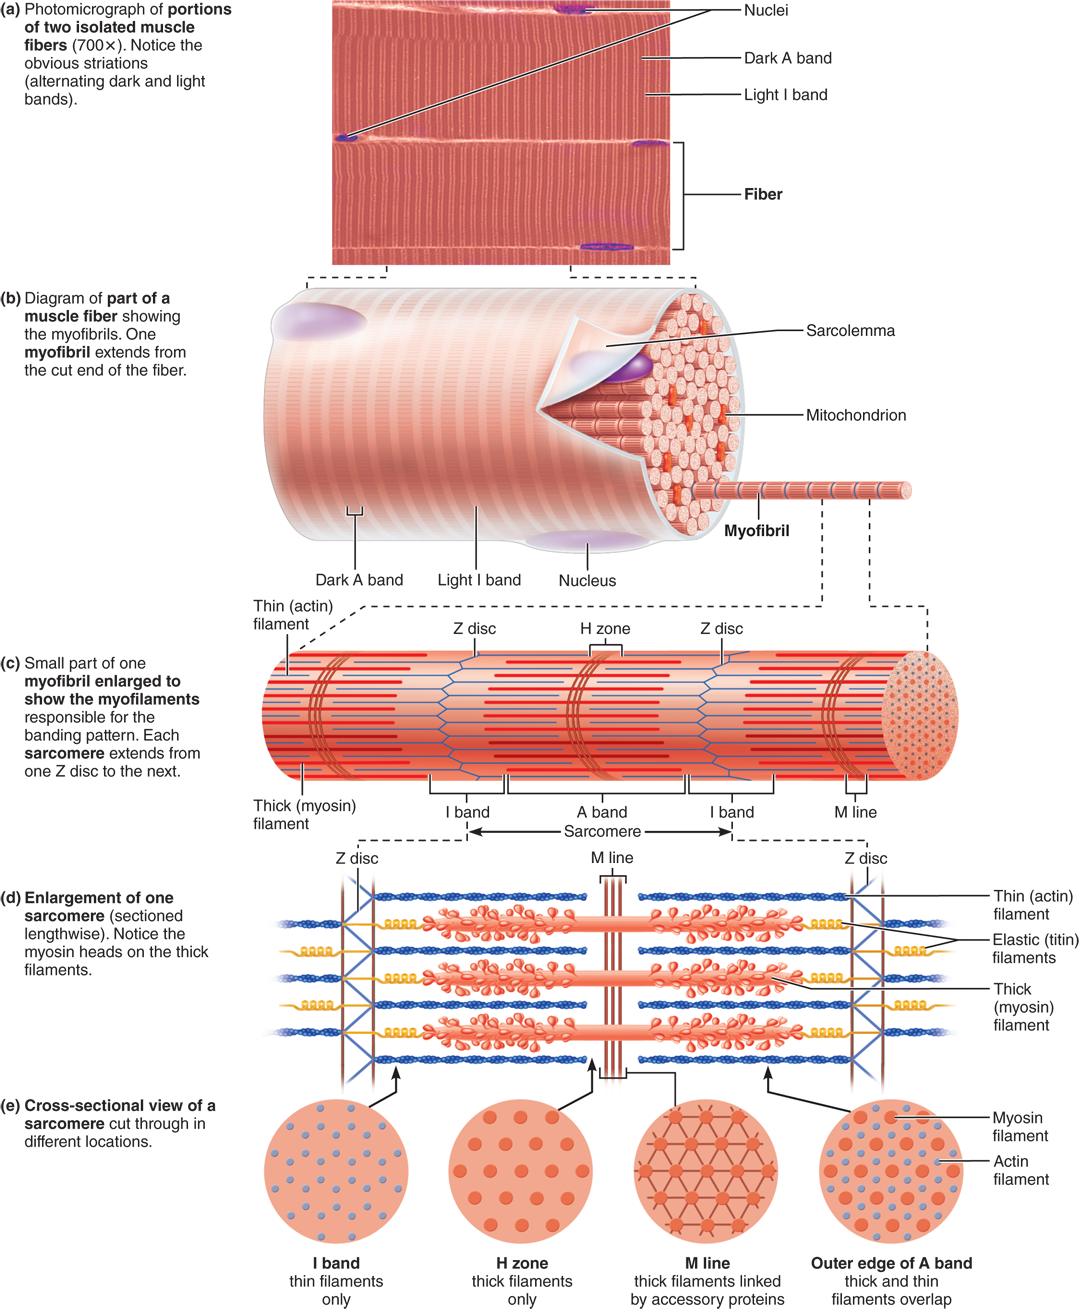 9.3 Skeletal Muscle Fibers Contain Calcium-regulated